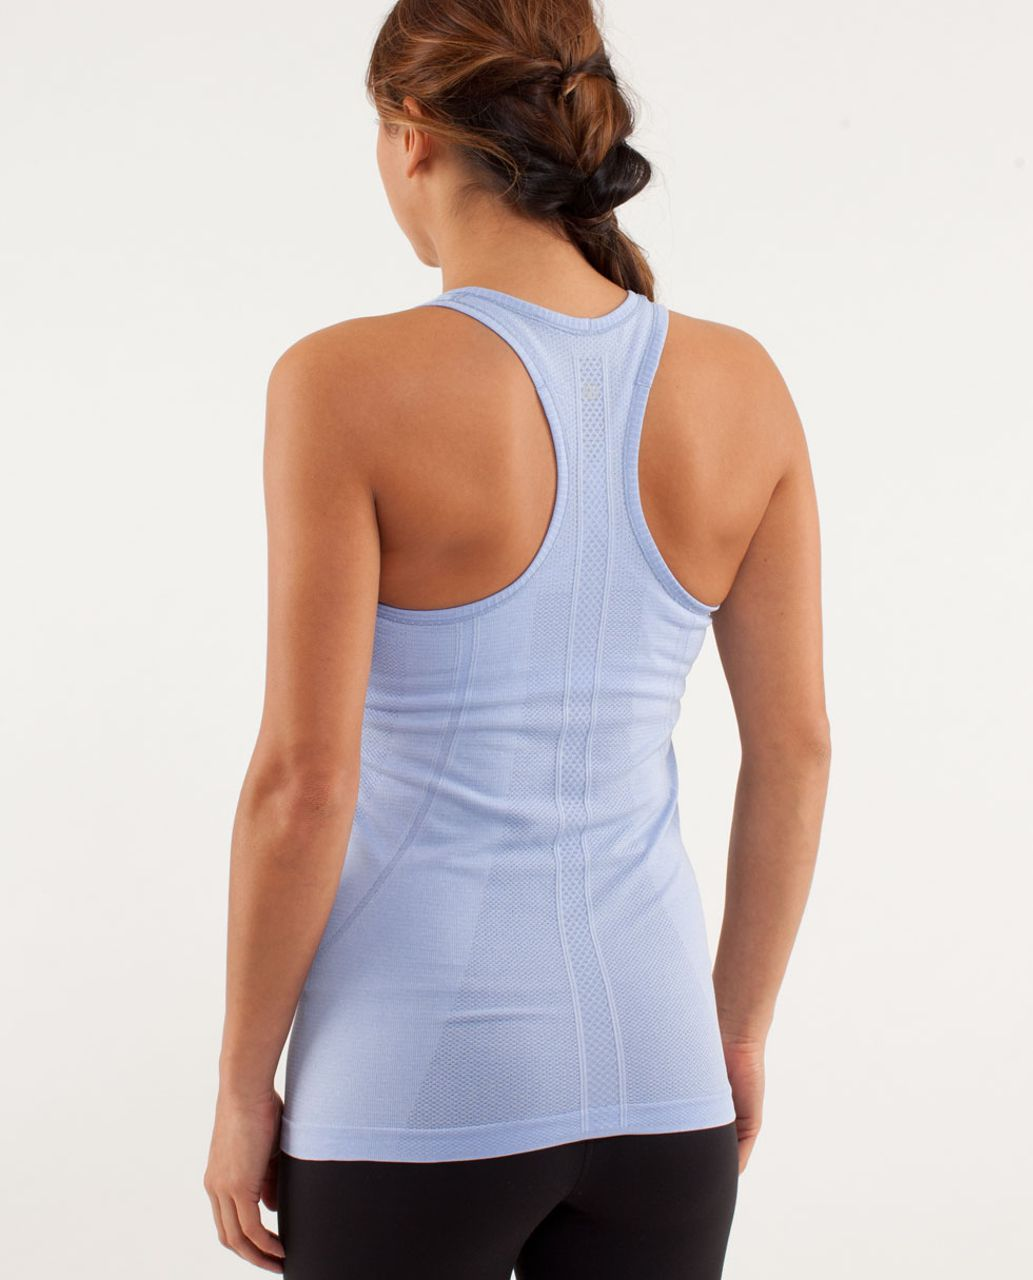 Lululemon Run:  Swiftly Tech Racerback - Polar Haze